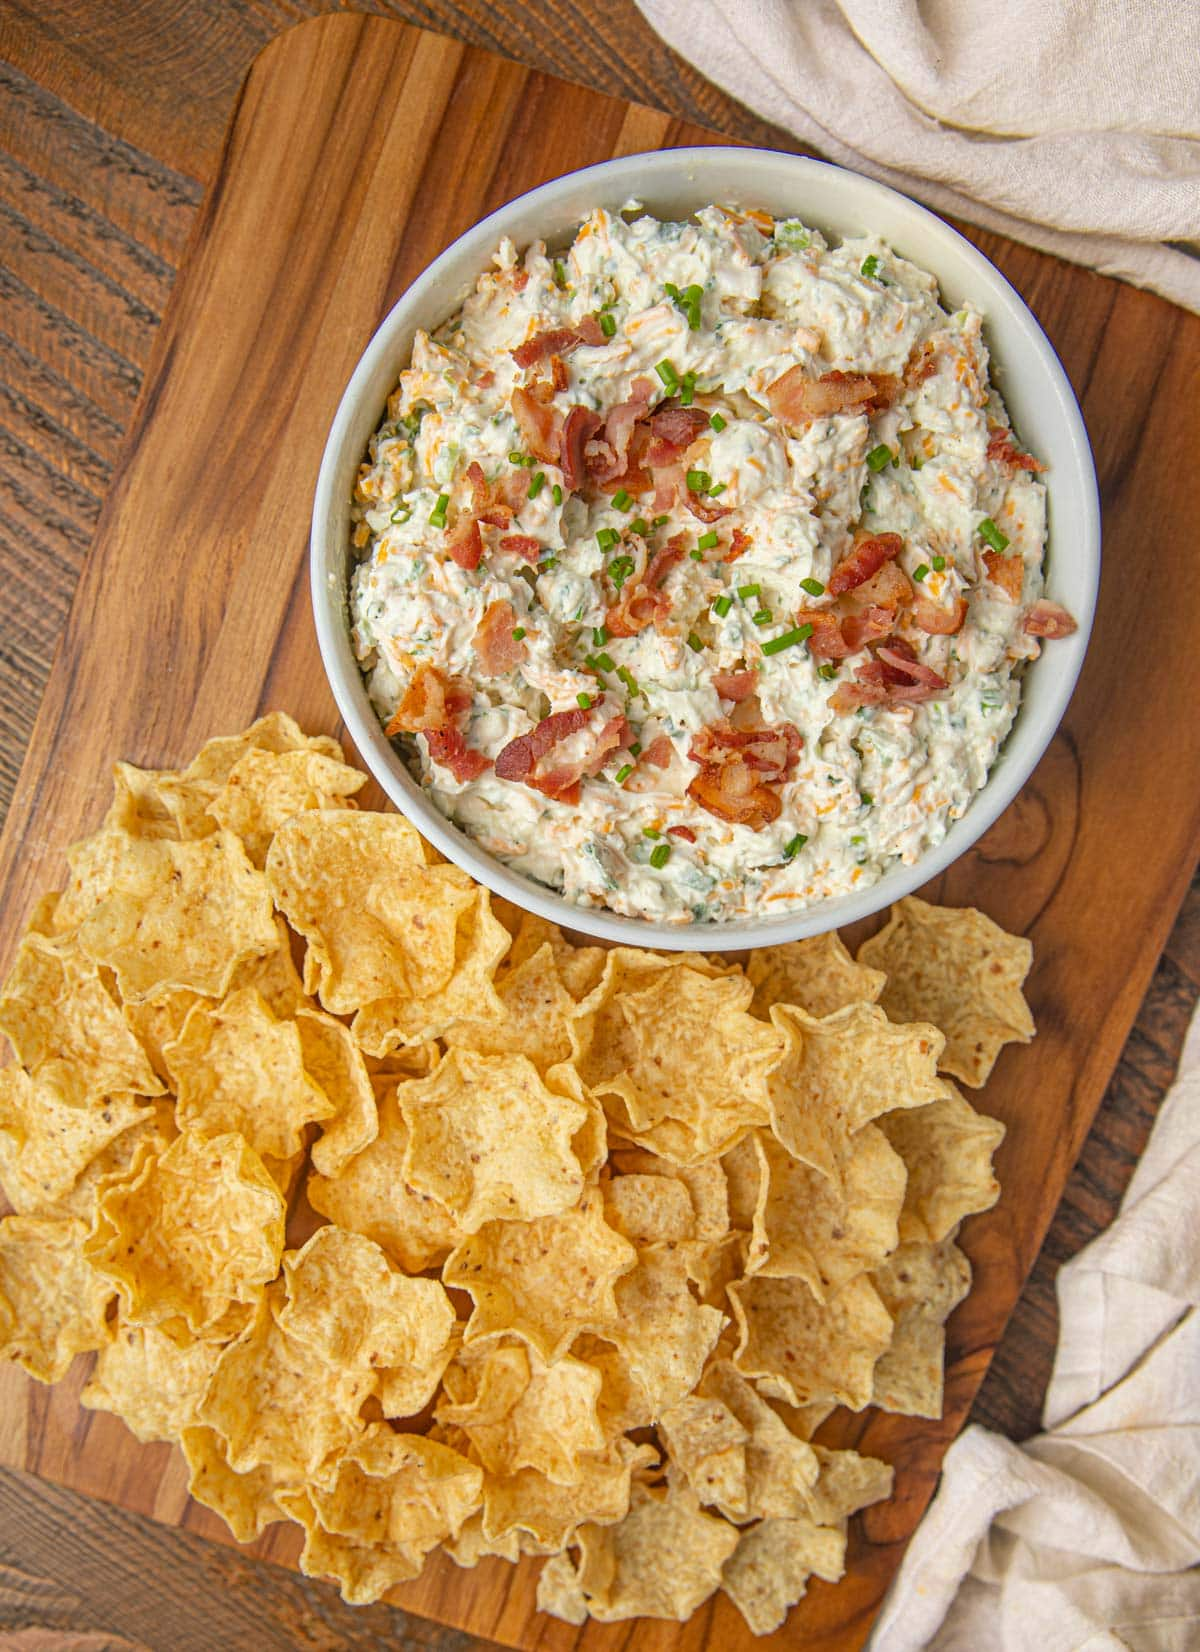 Bacon Ranch Dip with tortilla chips